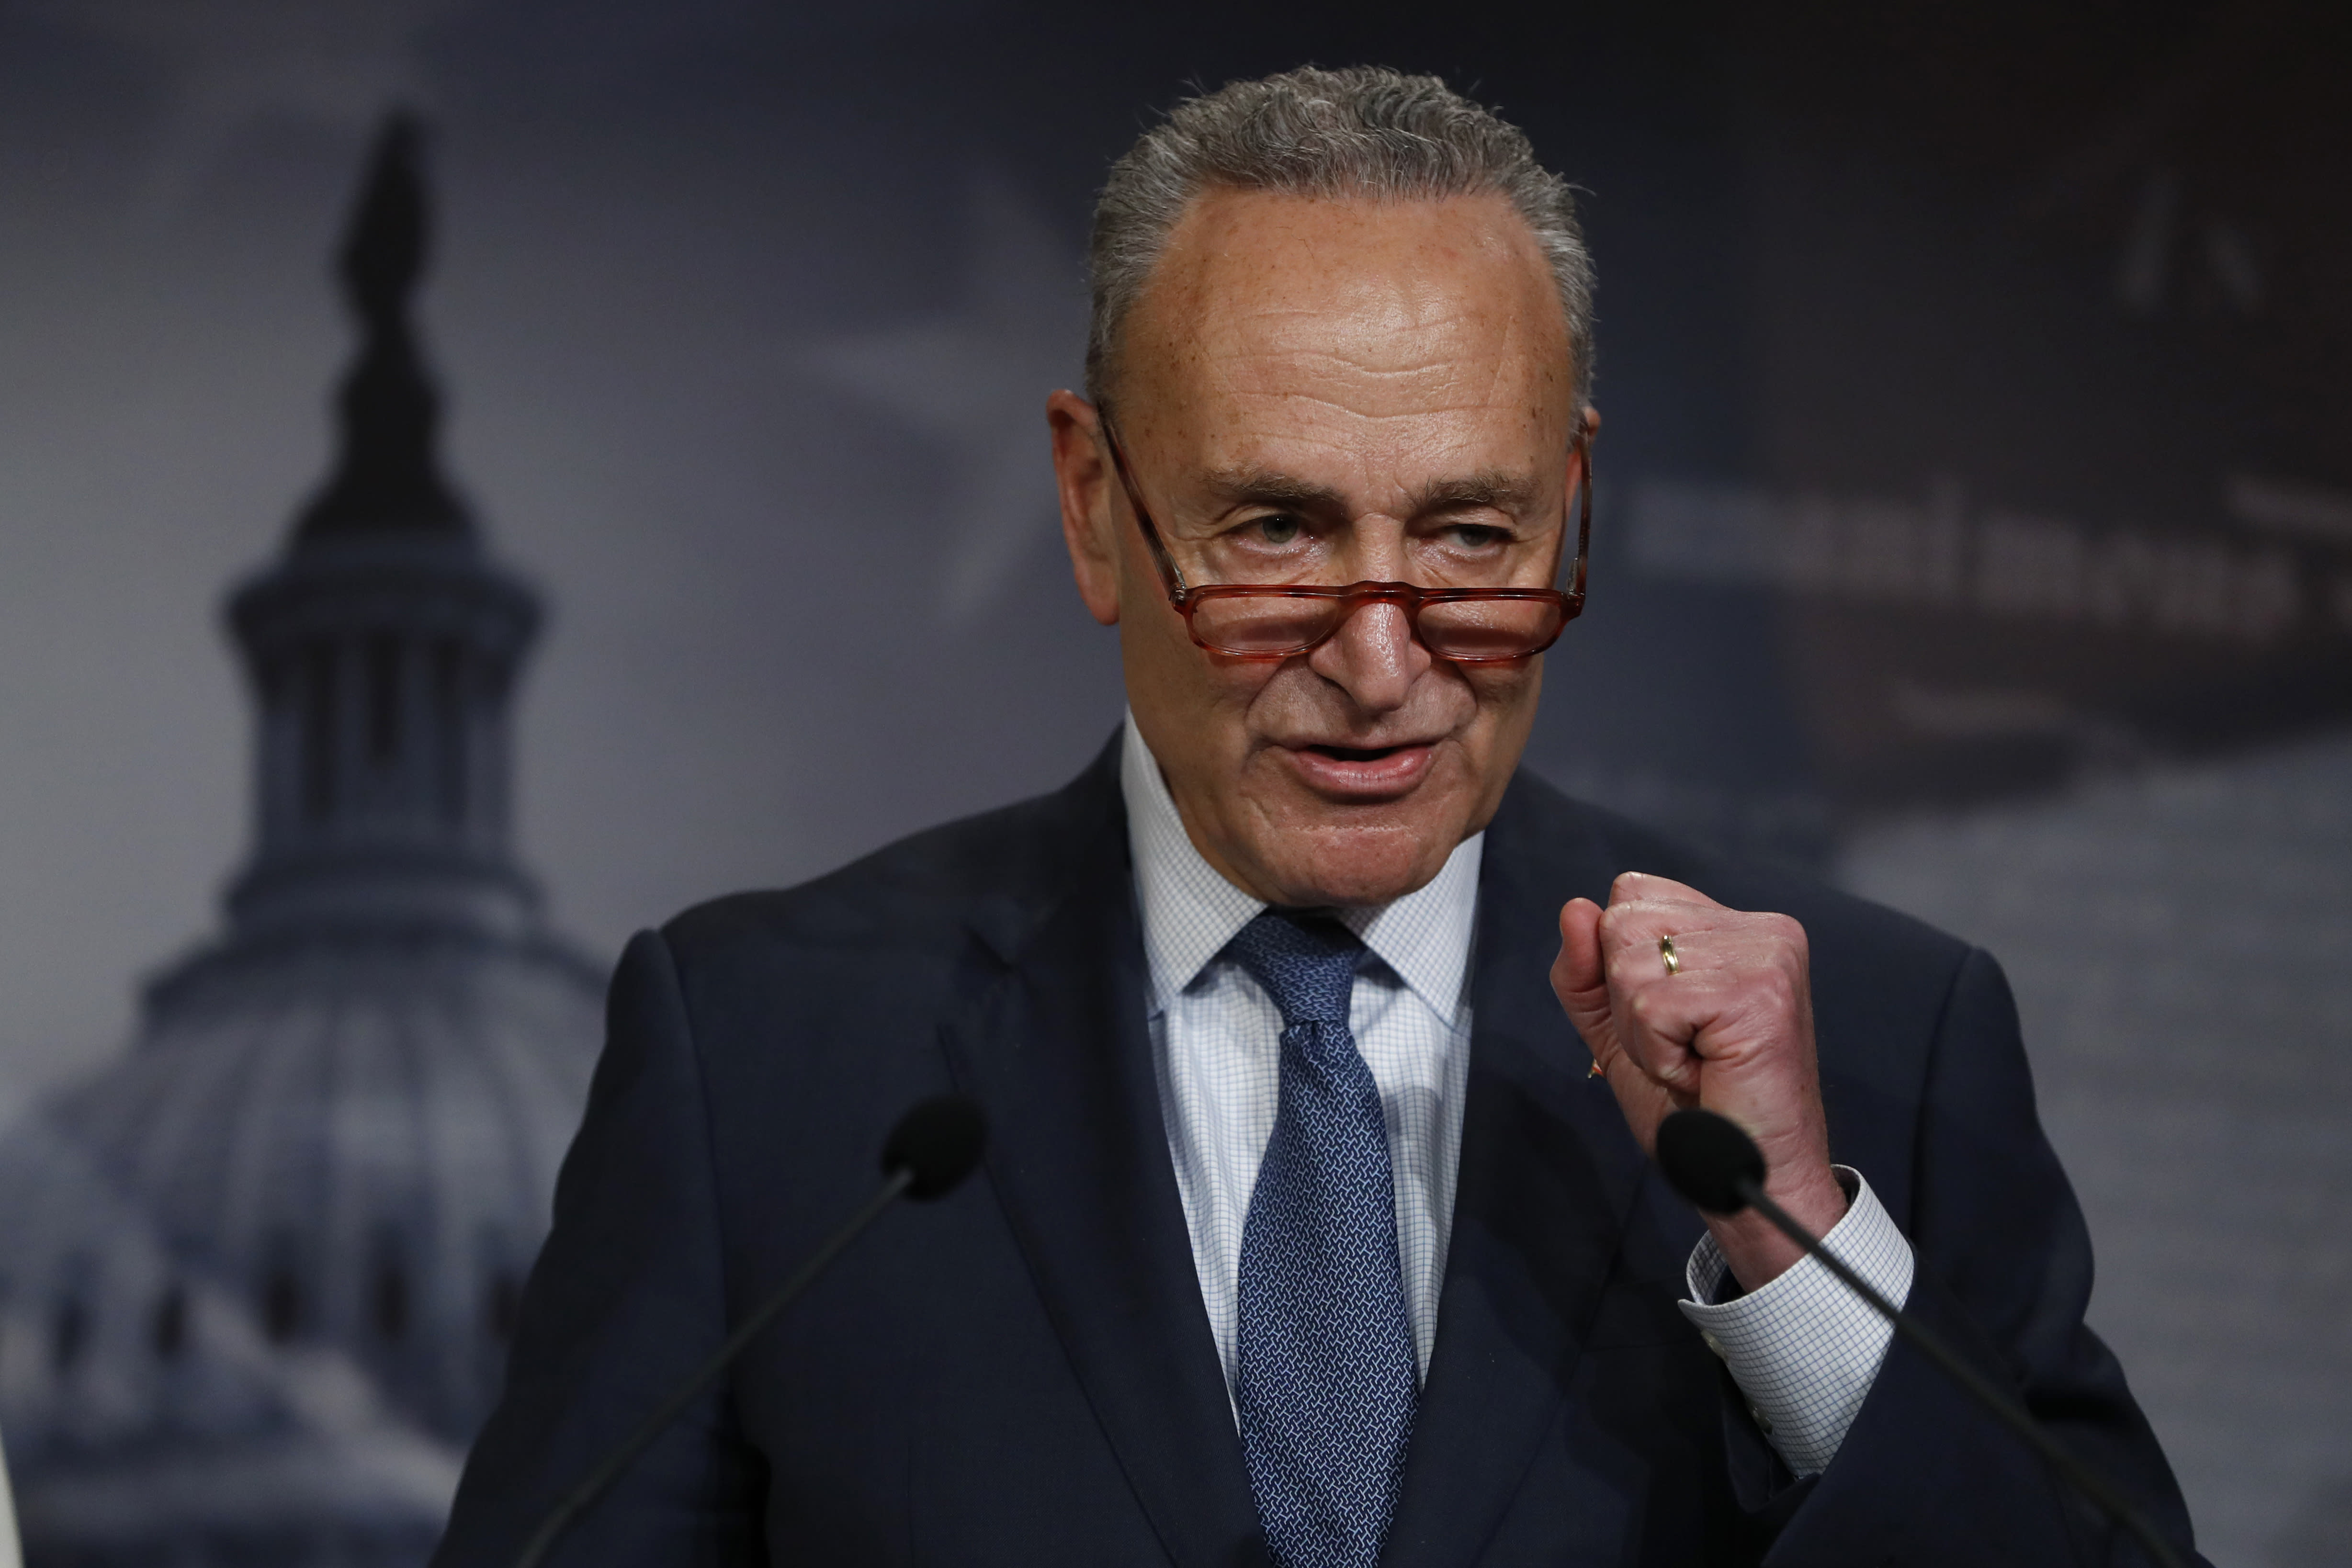 Senate Minority Leader Chuck Schumer, D-N.Y., talks to reporters about the impeachment trial of President Donald Trump on charges of abuse of power and obstruction of Congress, at the Capitol in Washington, Thursday, Jan. 16, 2020. (AP Photo/Julio Cortez)